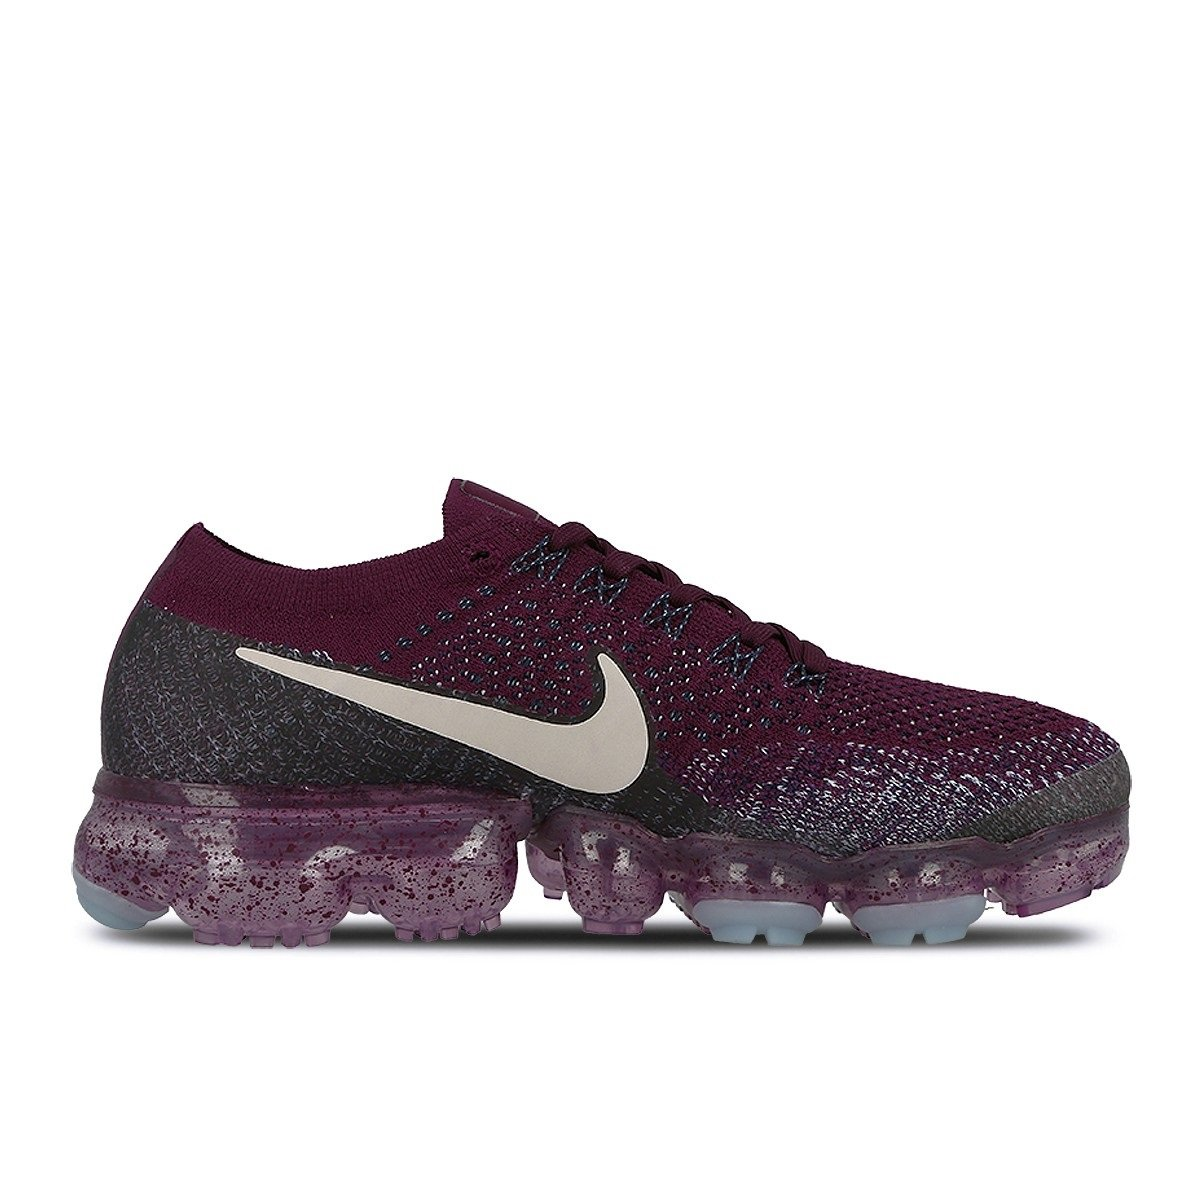 info for 139fd 2d0b6 Amazon.com | Nike Vapormax Bordeaux Purple Womens 899472-602 ...